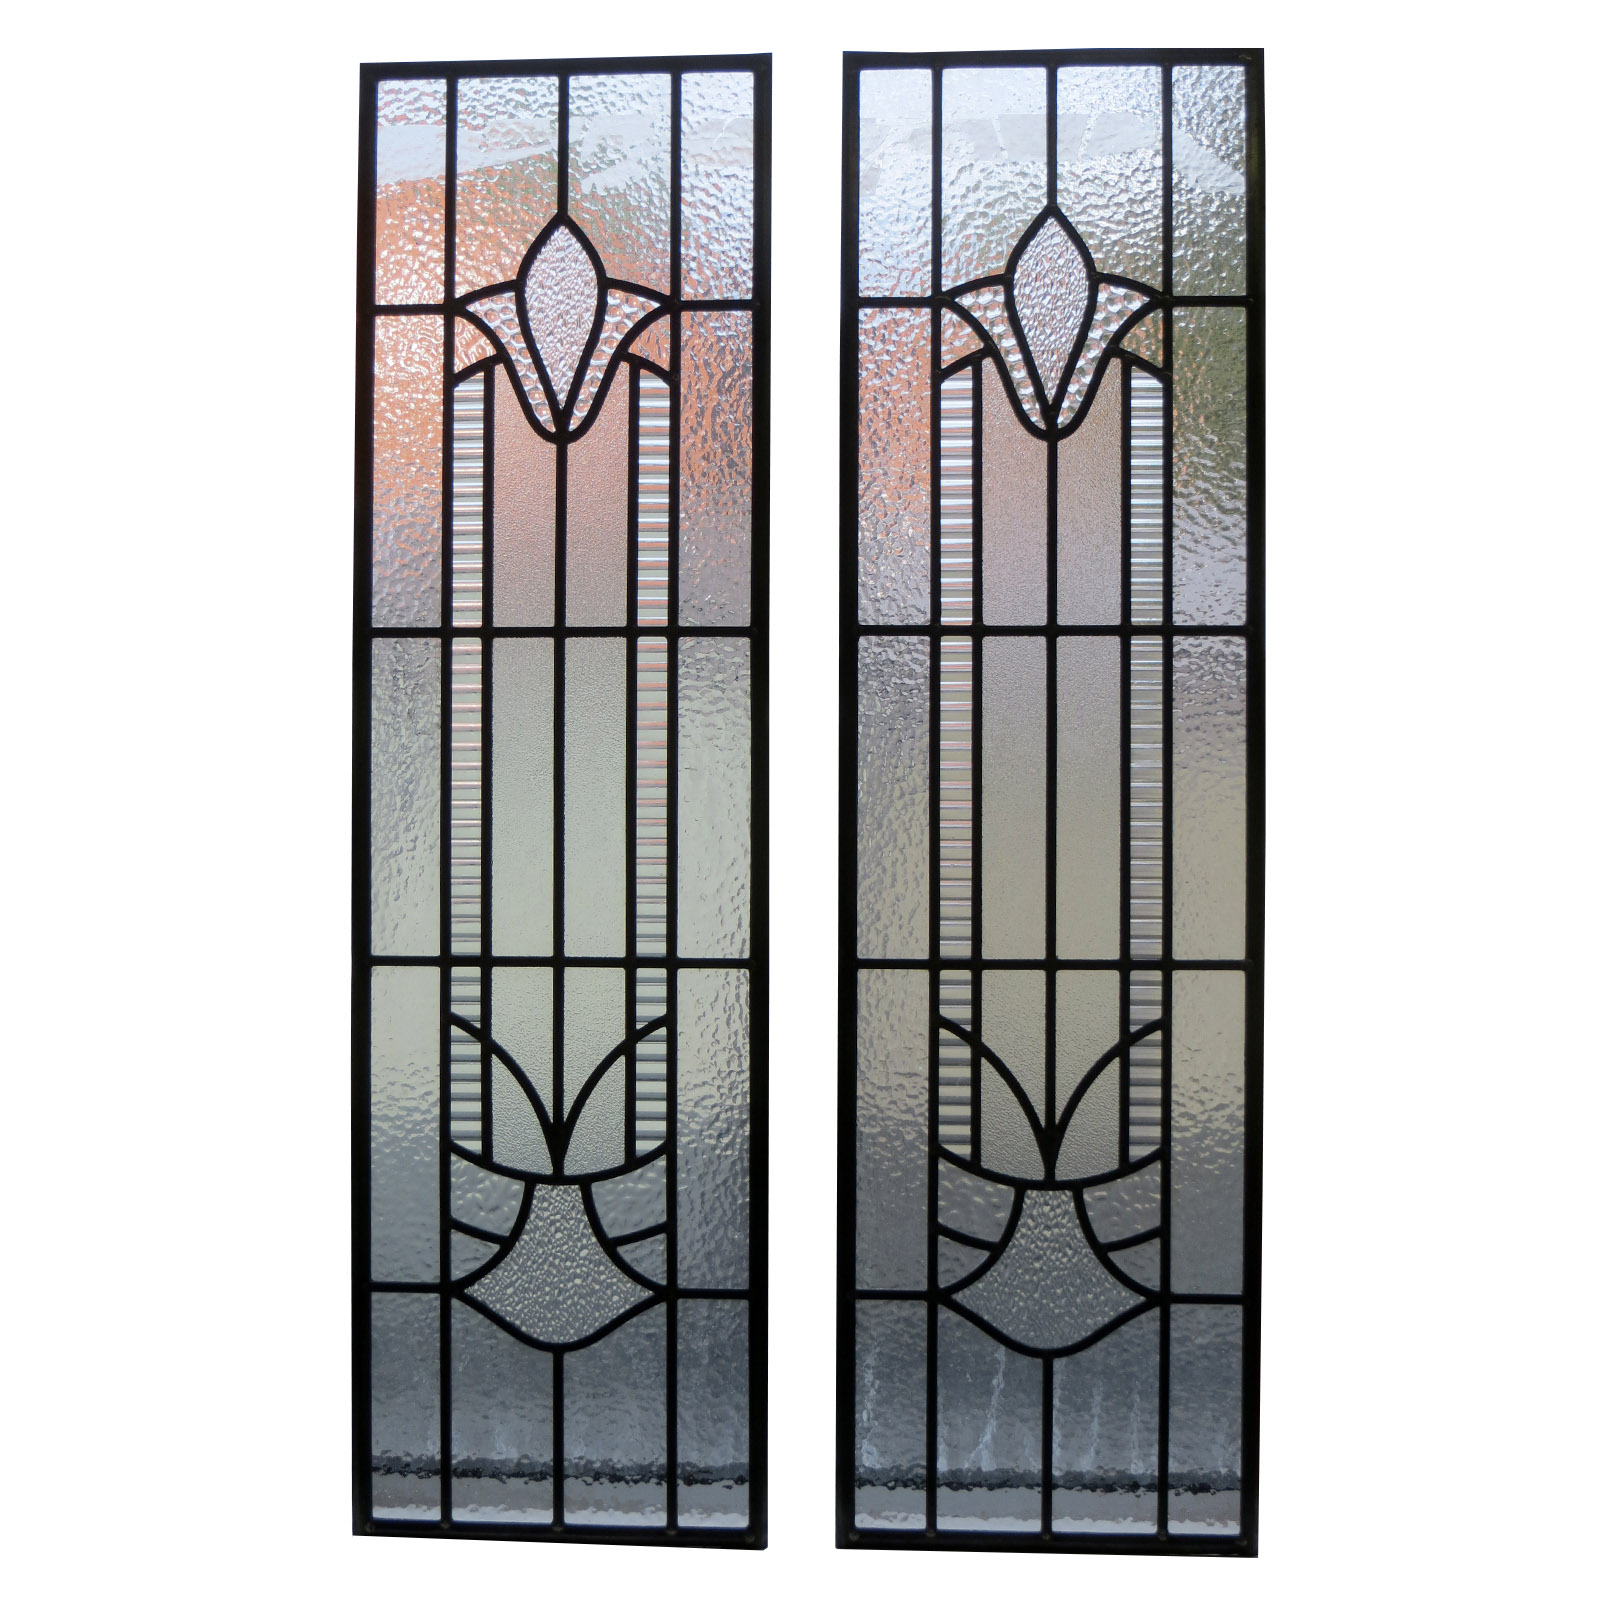 Traditional art deco stained glass panels from period for Art deco interior and panel designs